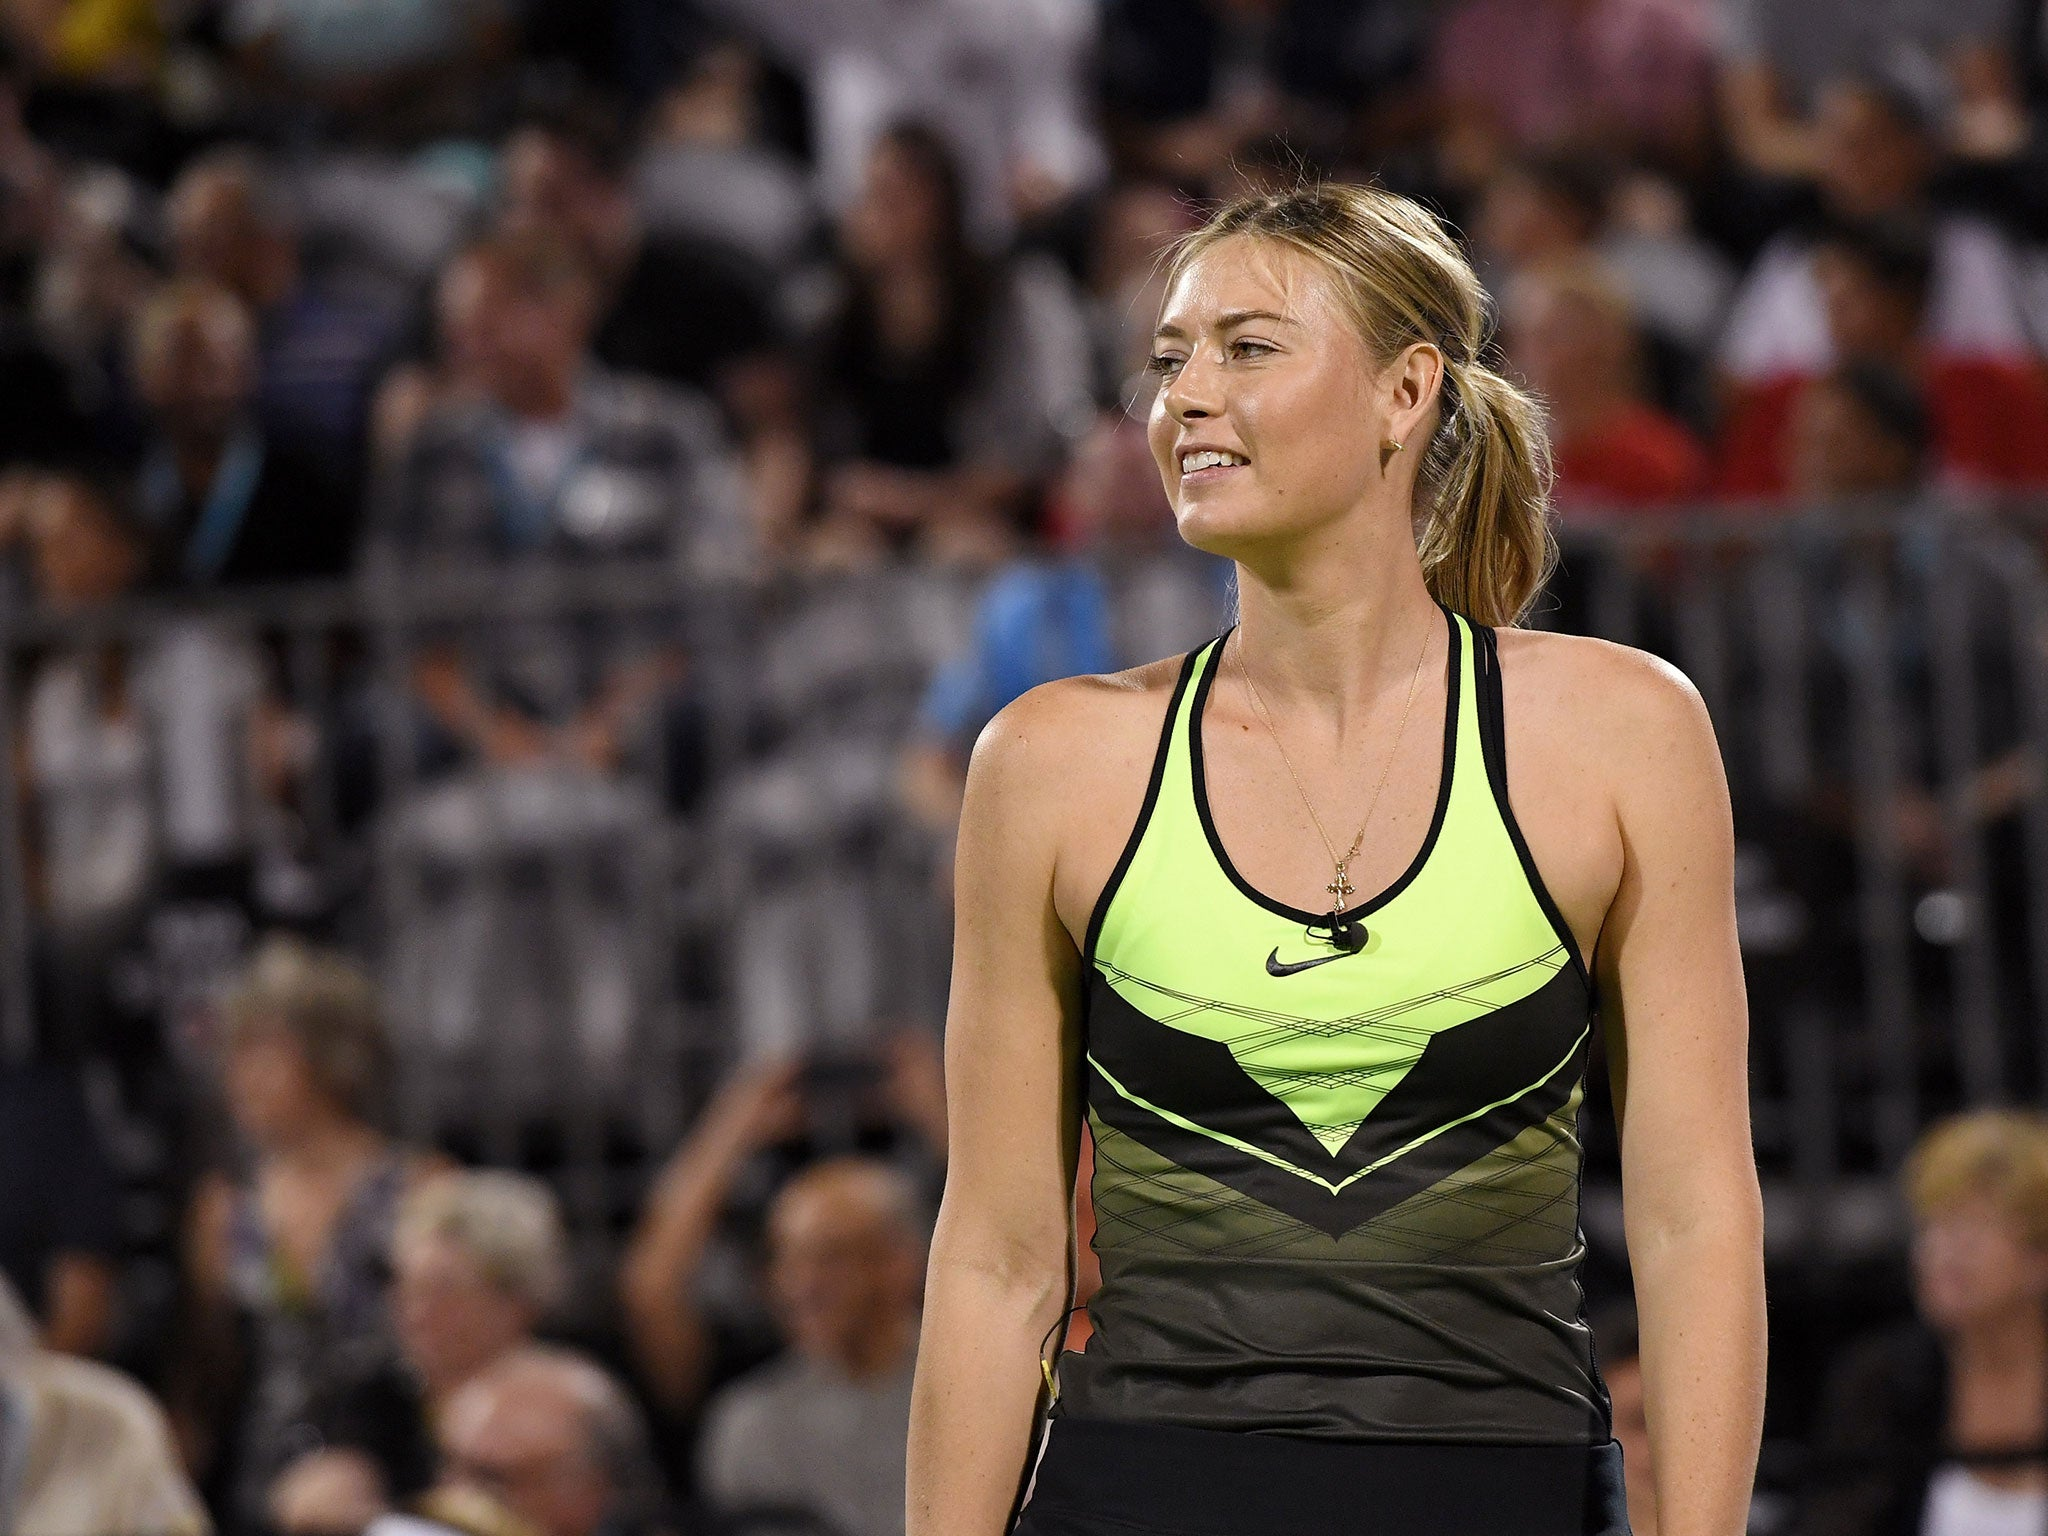 Maria Sharapova announces return from ban at Porsche Grand